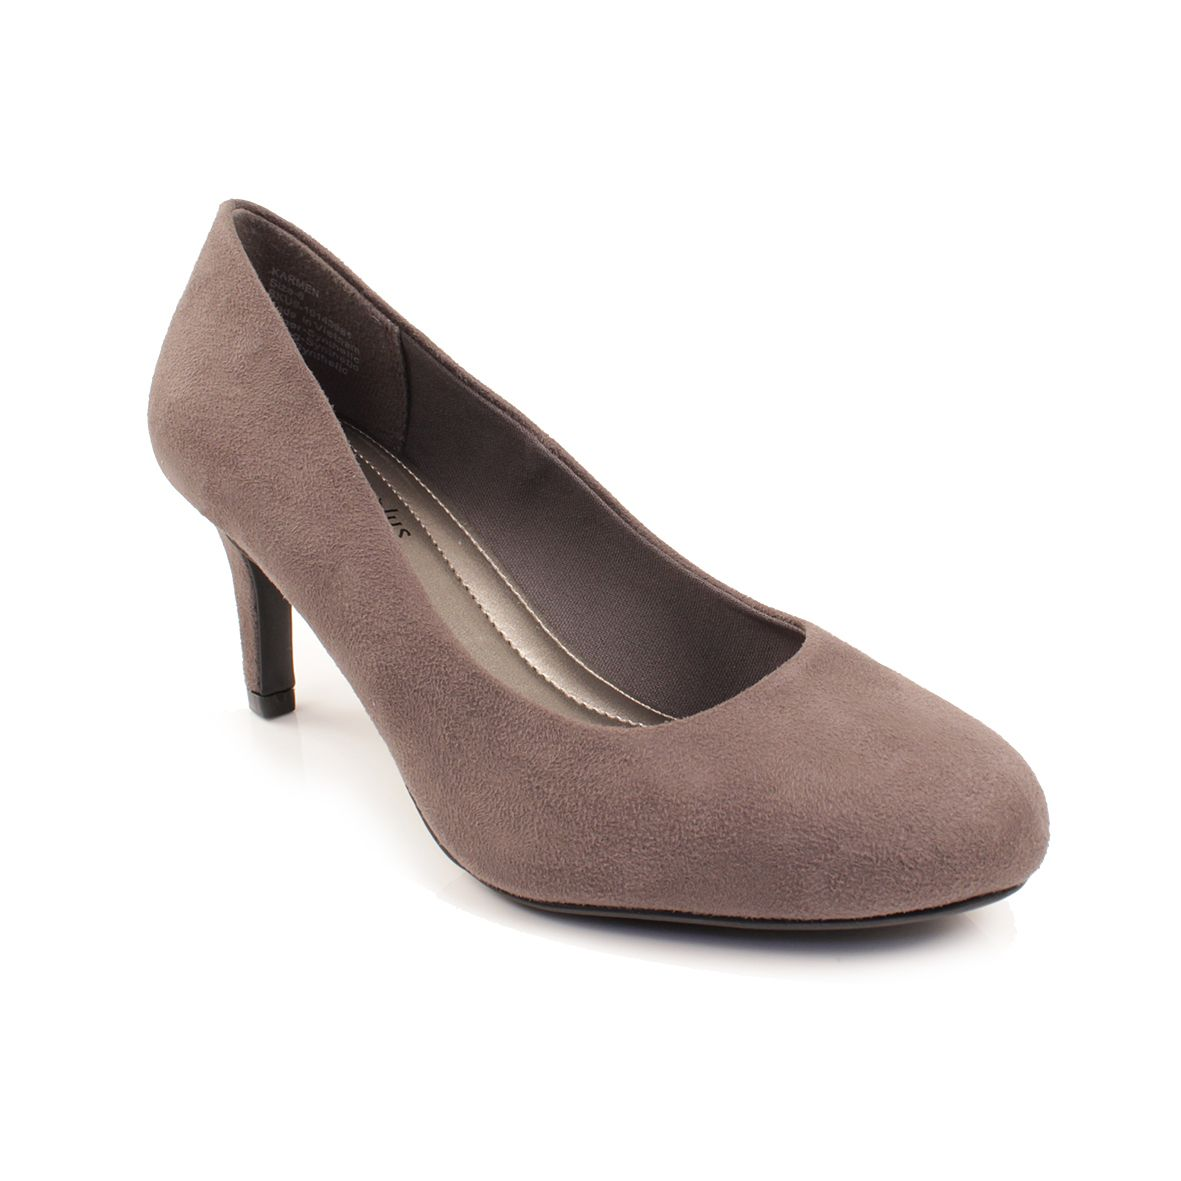 a22d1cff8 Karmen Grey by COMFORT PLUS BY PREDICTIONS - Payless Shoes Australia ...